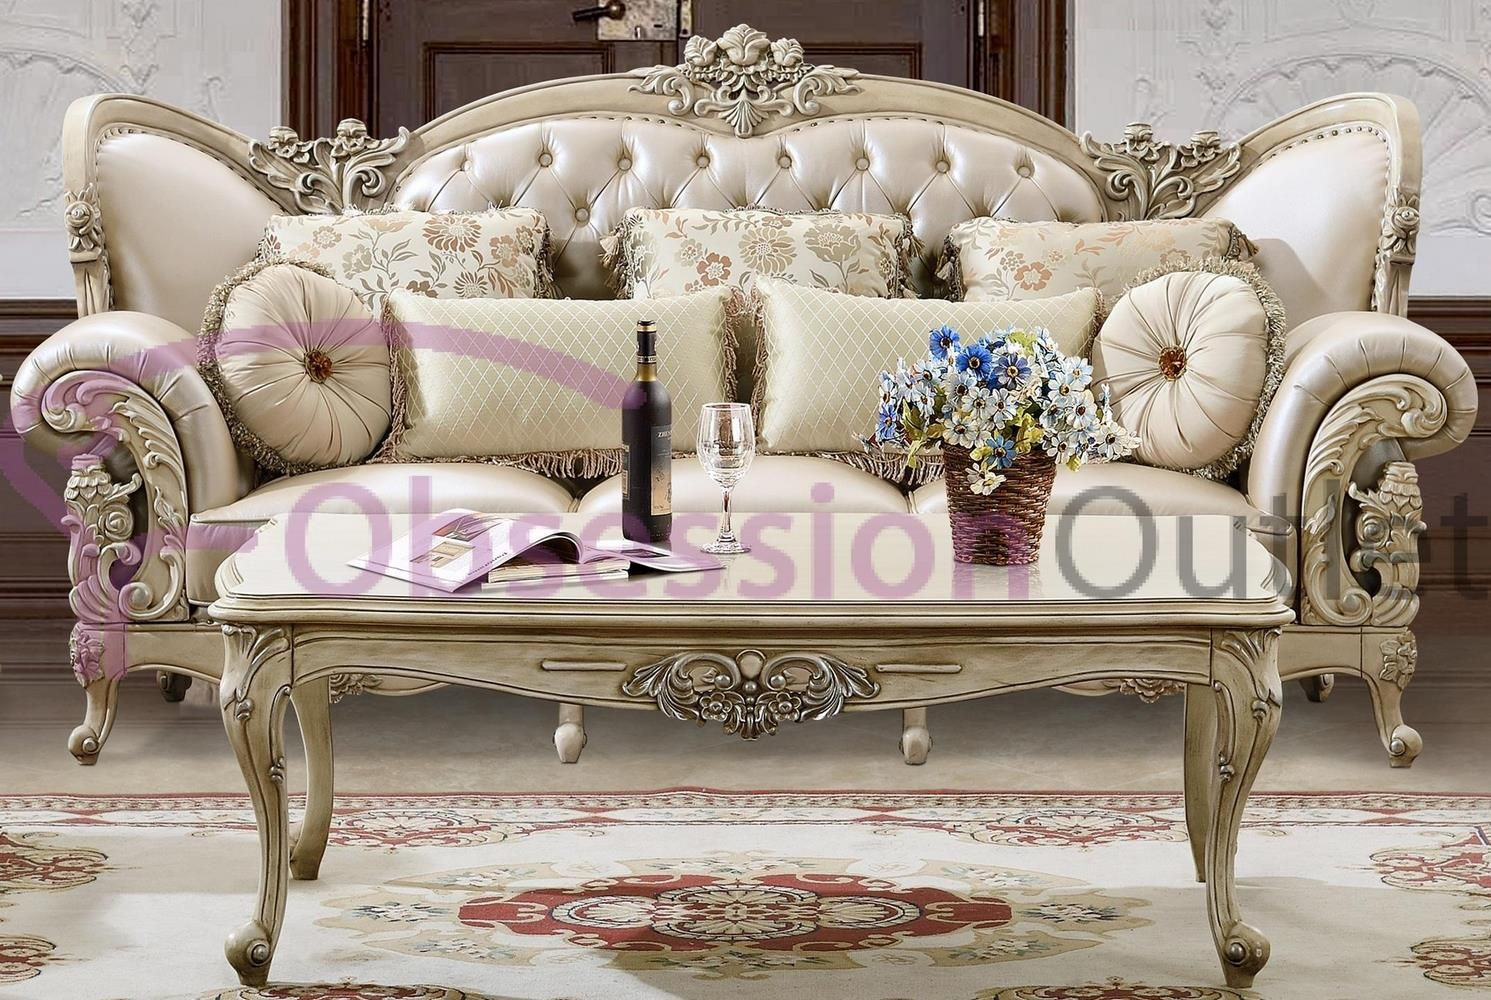 Sku Lsd246 Obsession Outlet In 2020 Living Room Table Sets Luxury Sofa Living Room Traditional Living Room Furniture #traditional #living #room #sets #furniture